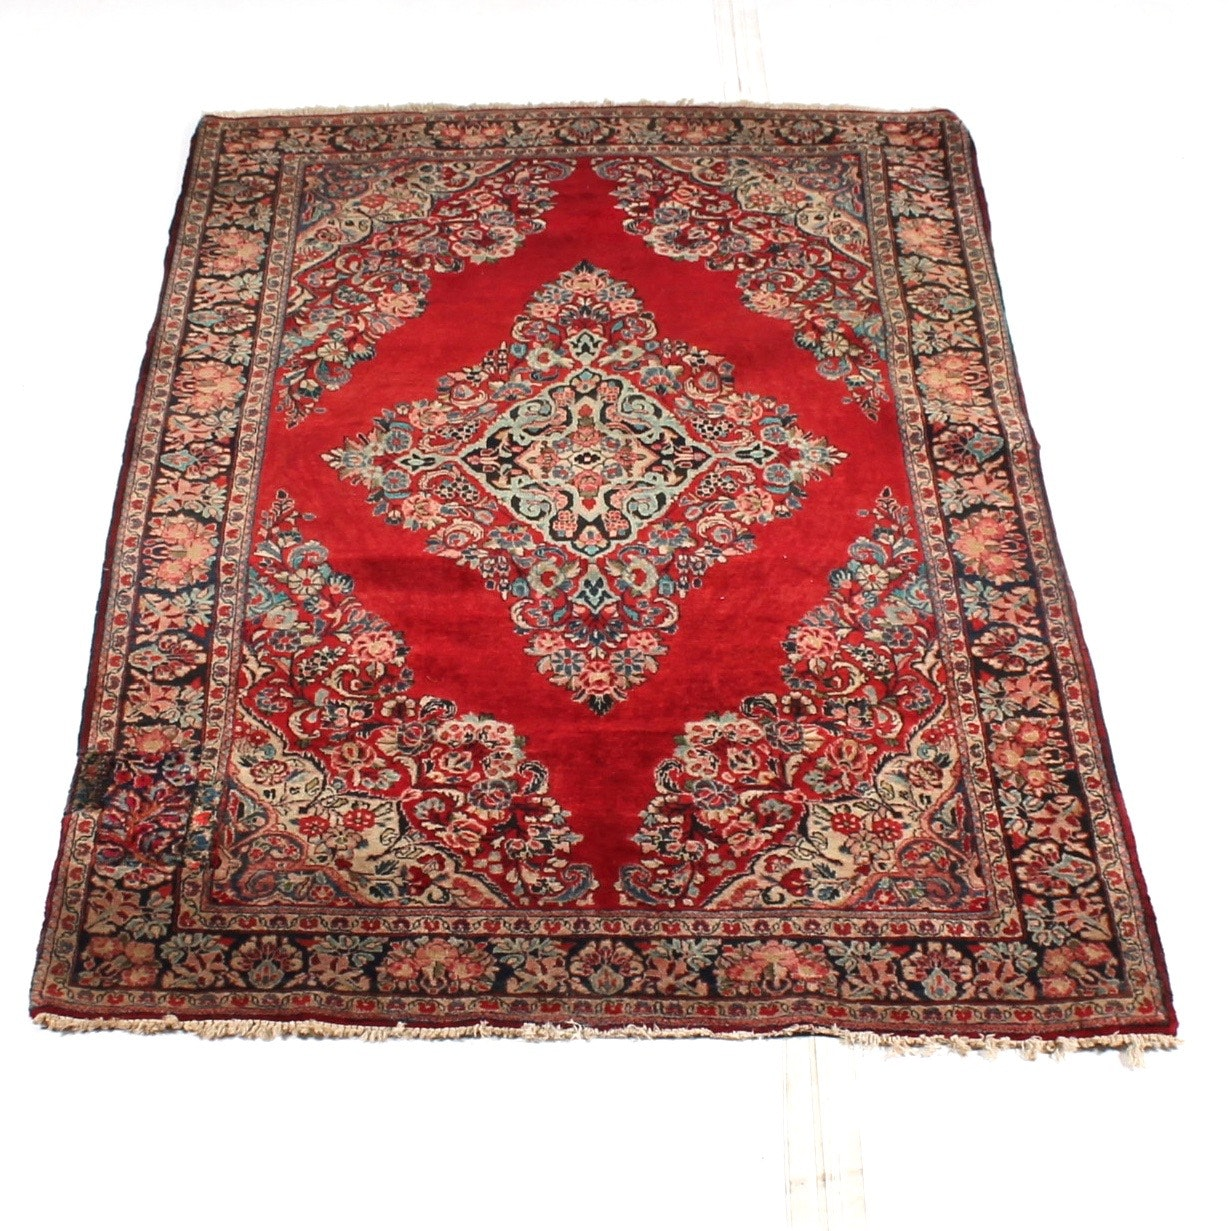 Antique Hand-Knotted Persian Sarouk Rug